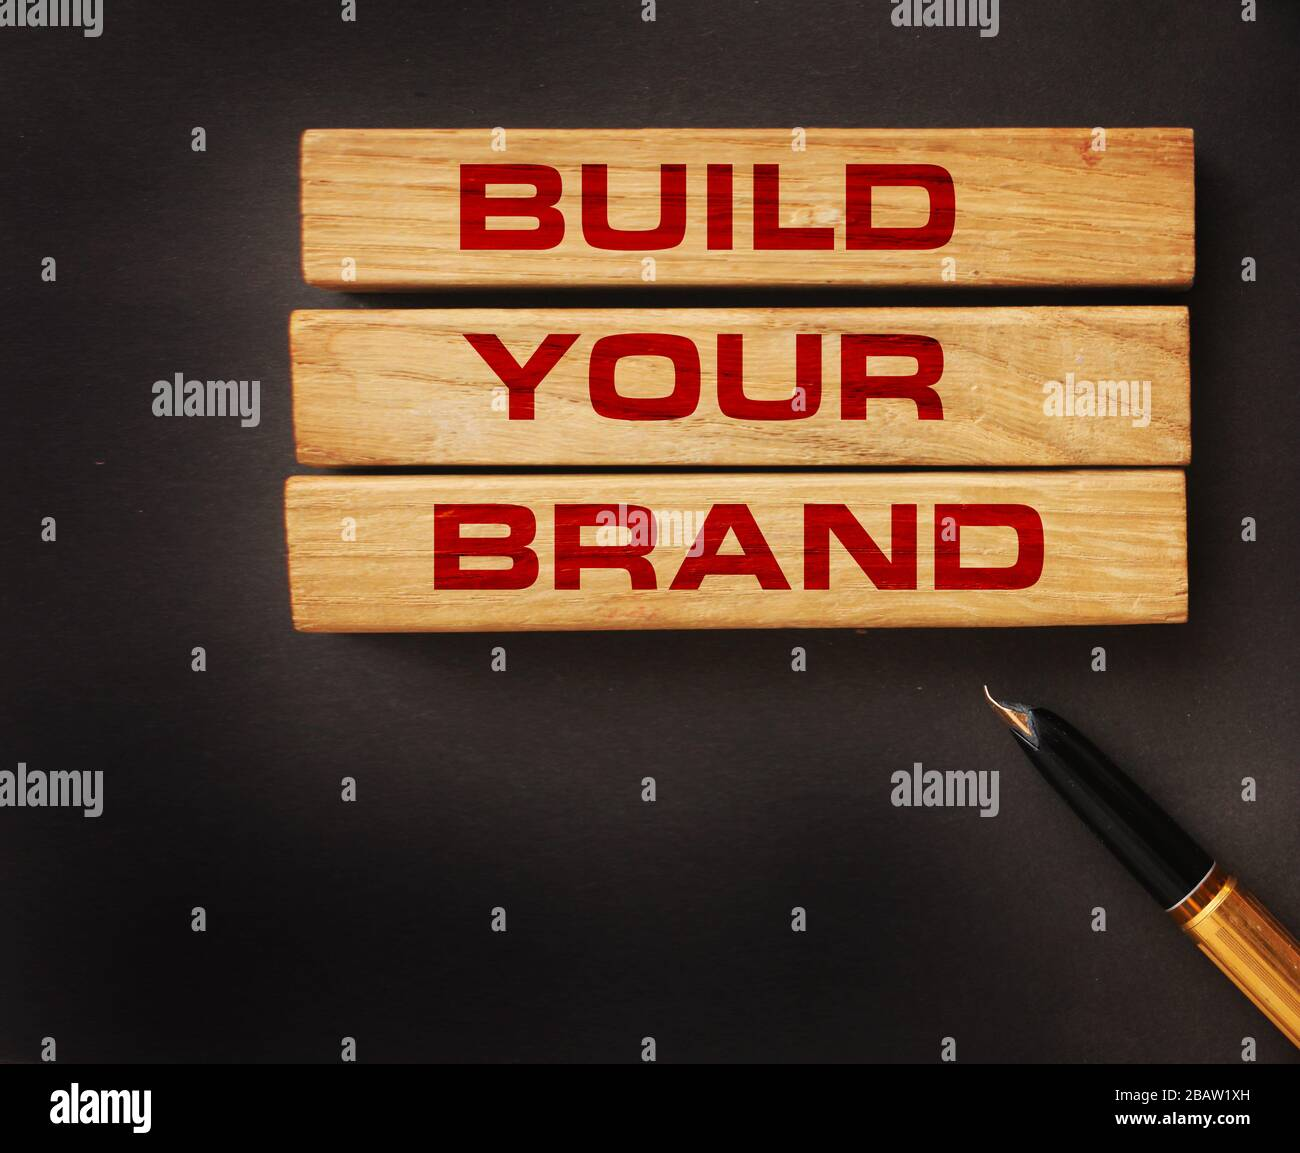 Build your Brand written on wooden blocks with vintage styled background. Branding rebranding marketing concept Stock Photo